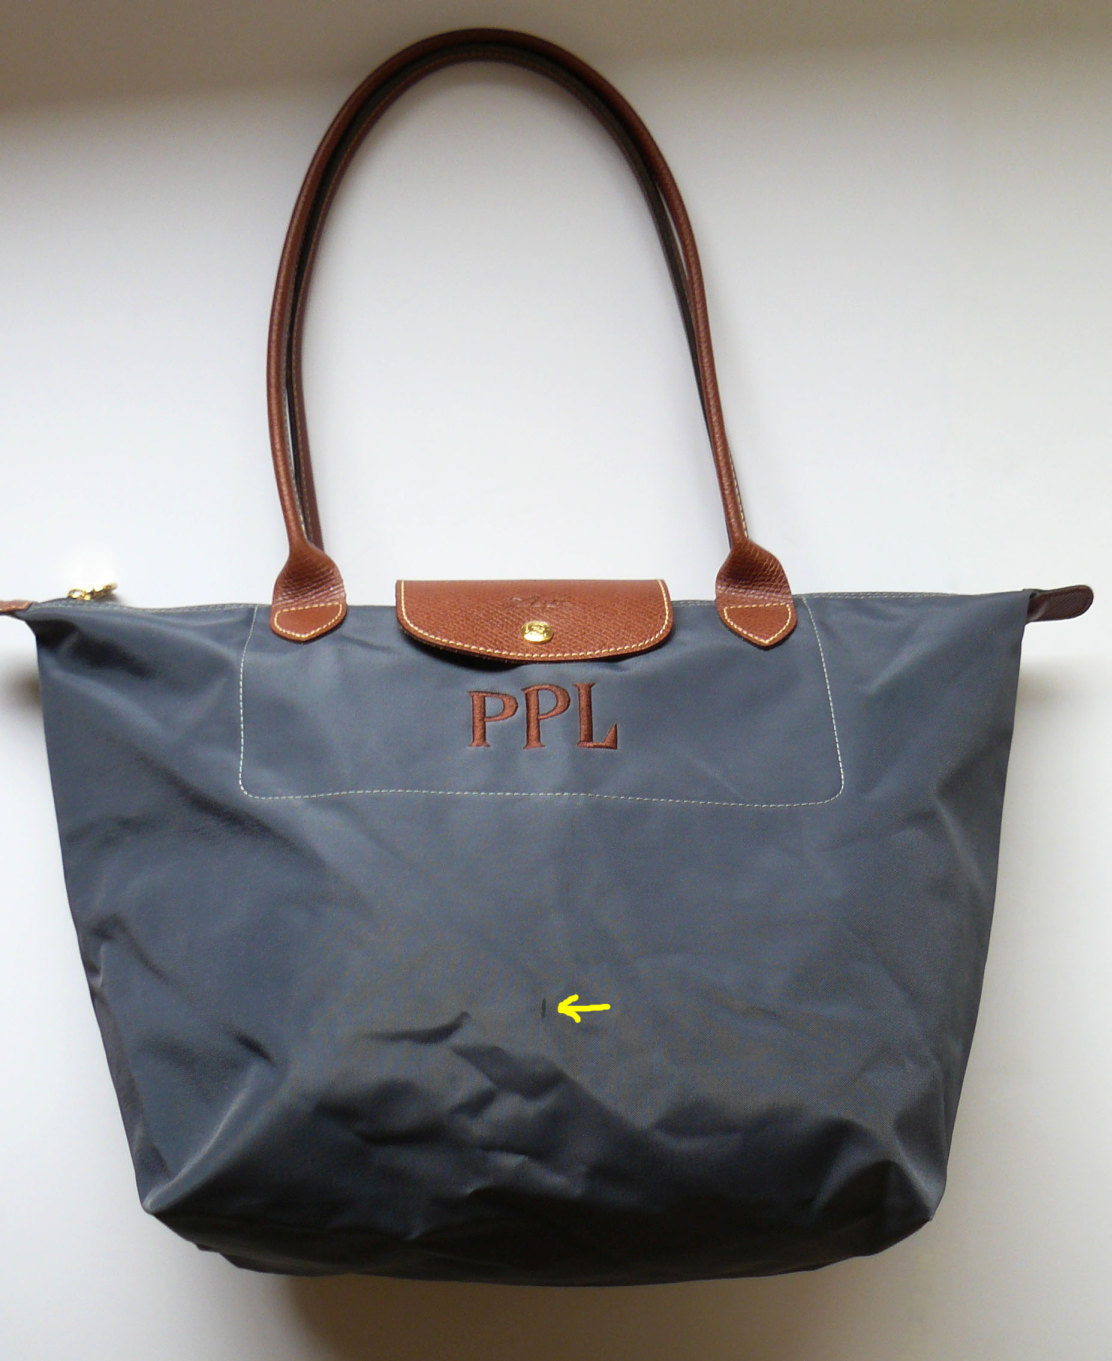 lonchamp le pliage gray monogrammed tote shoulder bag made in france xl handbags purses. Black Bedroom Furniture Sets. Home Design Ideas